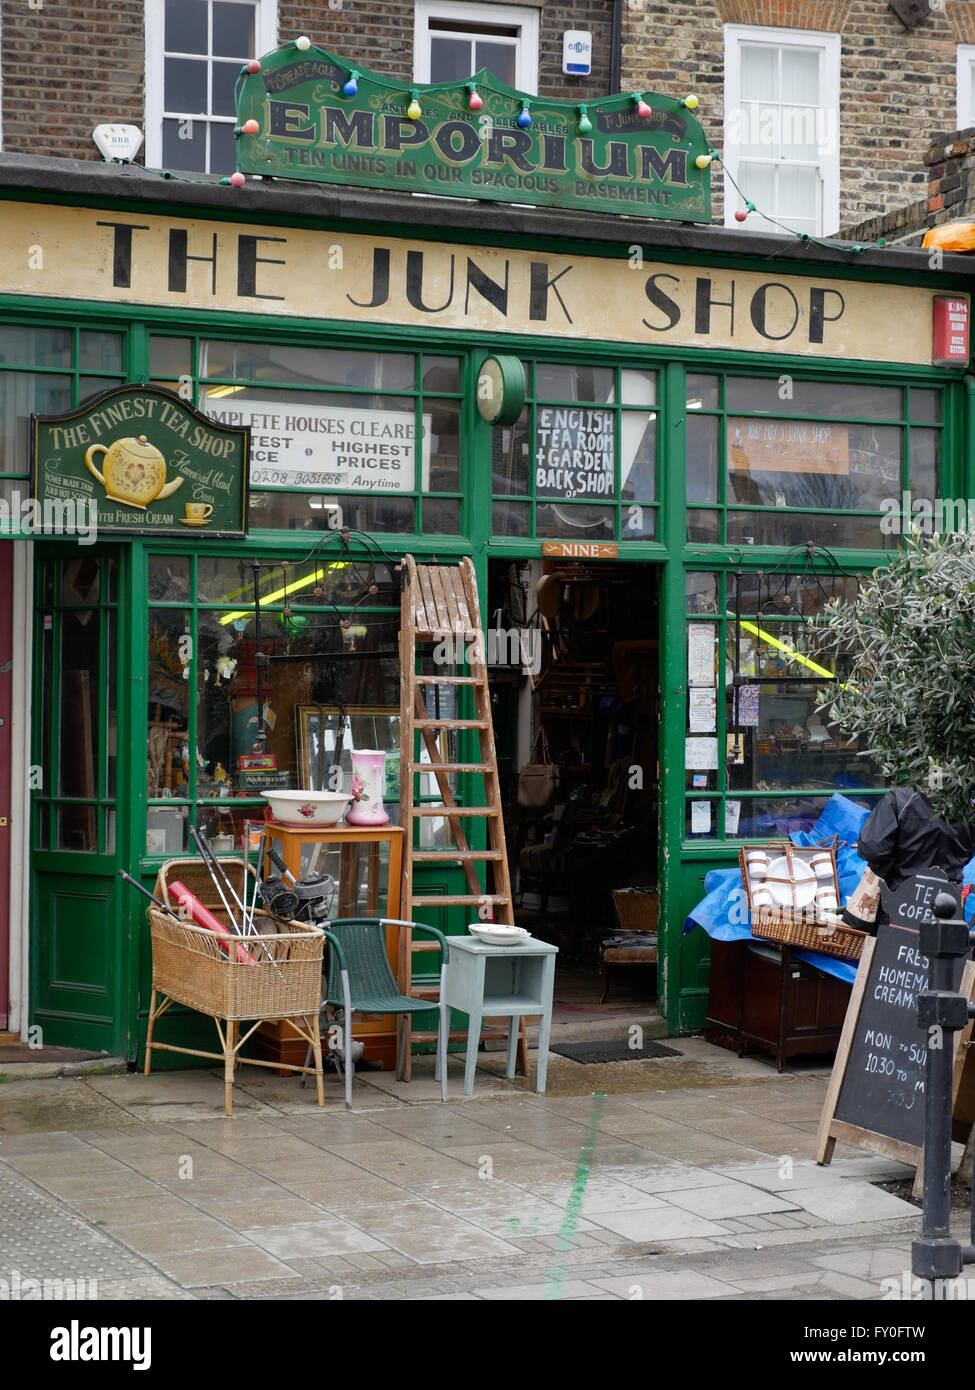 Junk shop in Greenwhich London UK - Stock Image